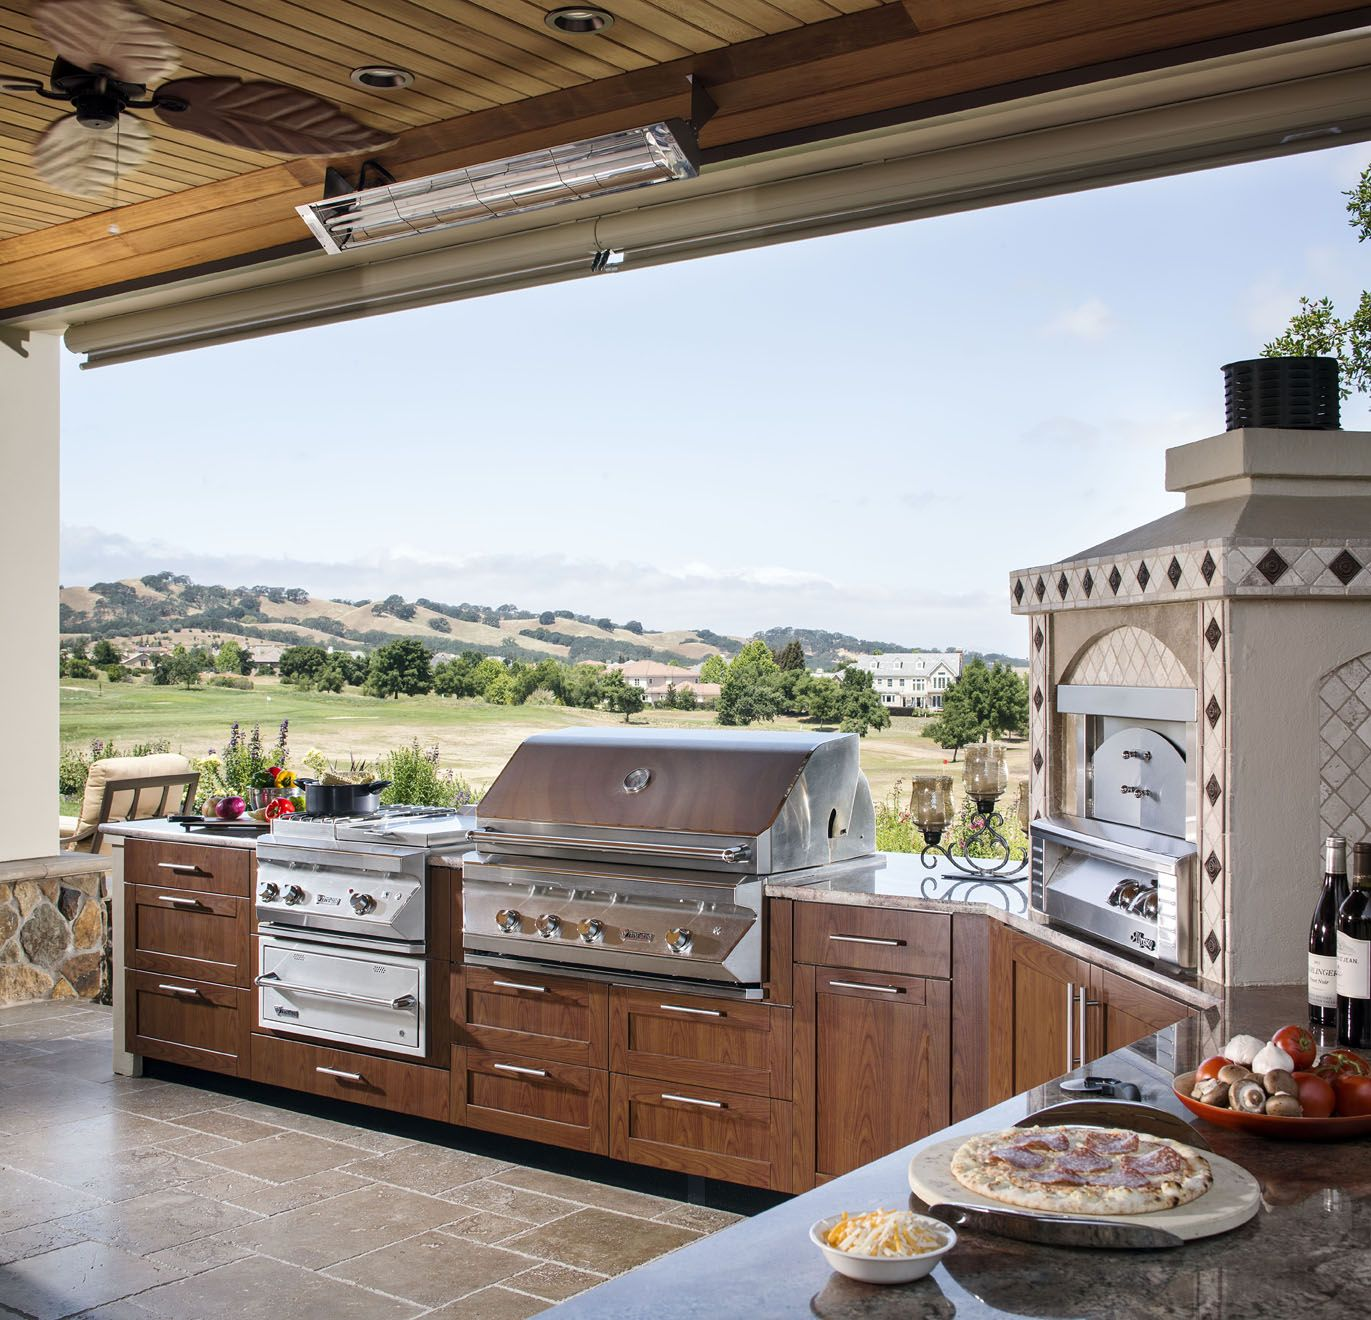 Best The Grill Side Burner And Warming Drawer Enhance The 640 x 480